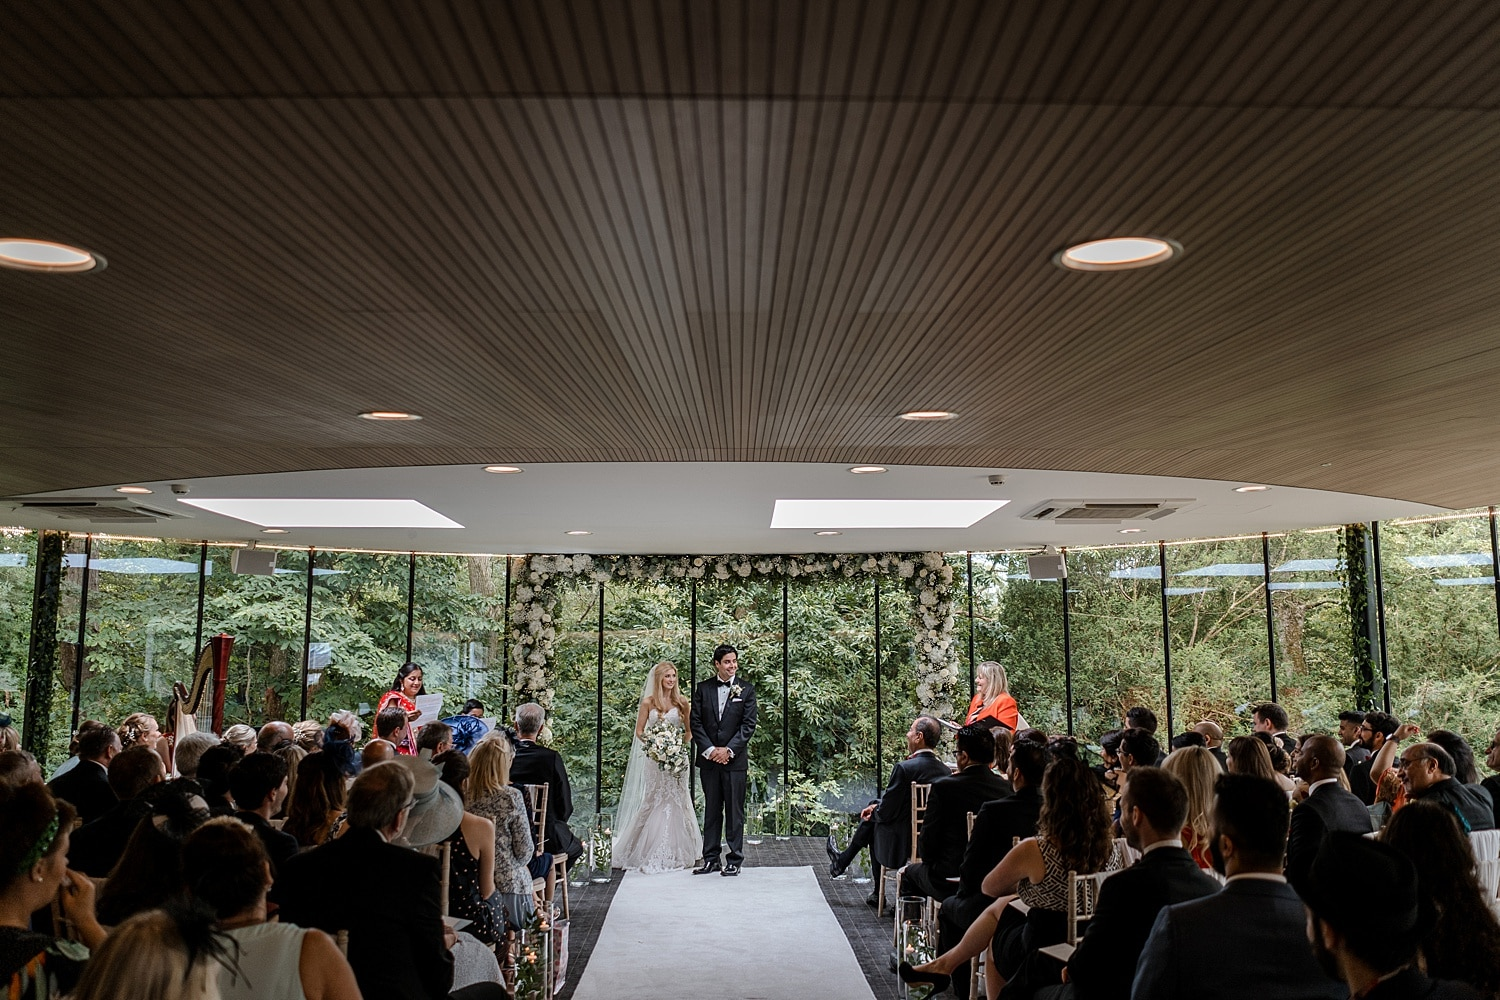 Wedding ceremony at Fairyhill